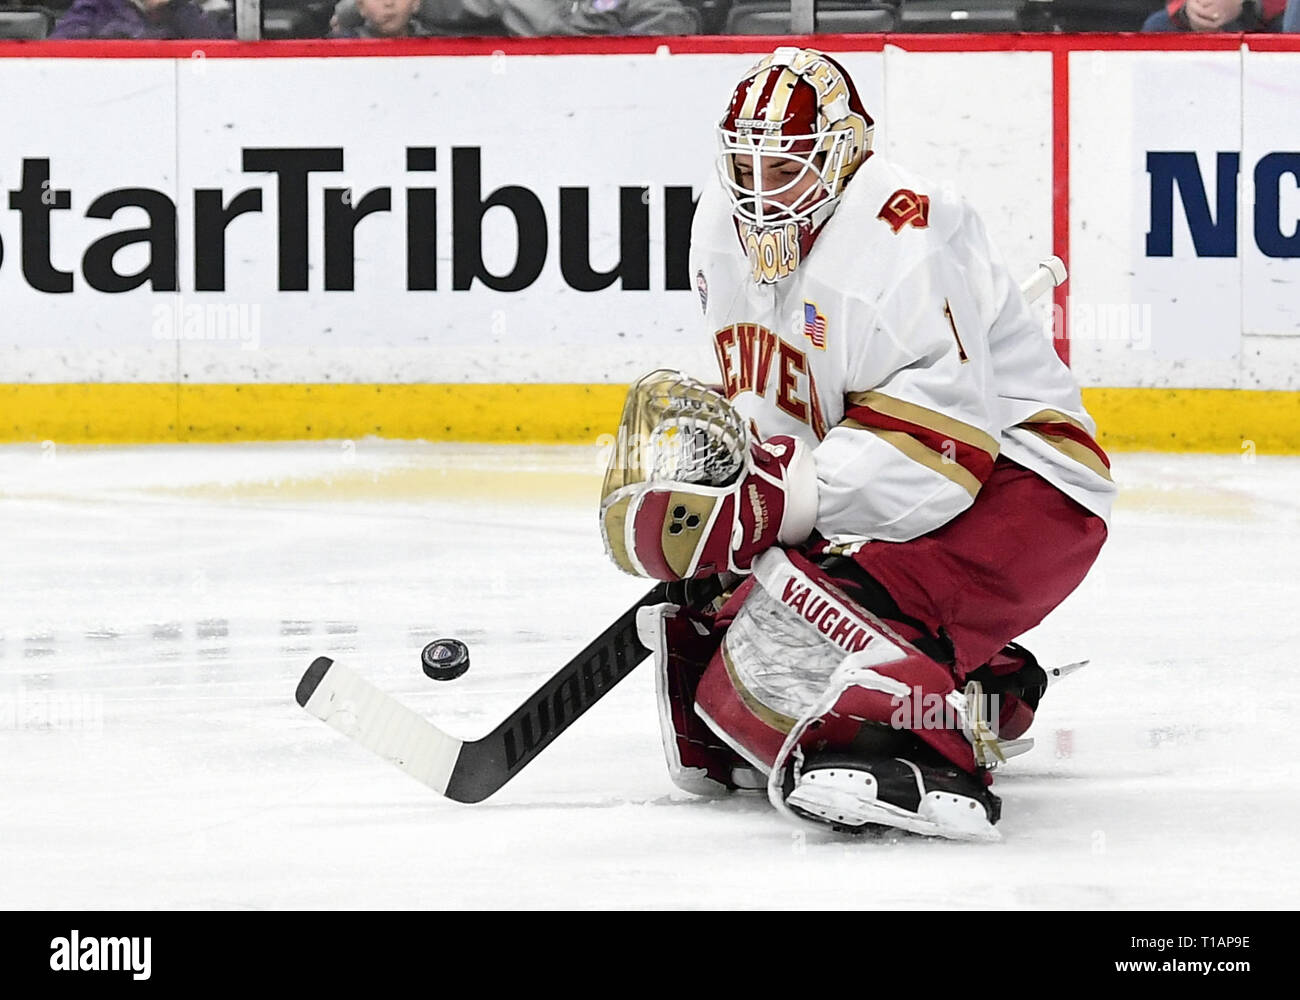 March 23, 2019 Denver Pioneers goaltender Devin Cooley (1) makes a save during the NCHC Frozen Faceoff third place game between the Colorado College Tigers and the Denver Pioneers at the Xcel Energy Center, St. Paul, MN. Denver defeated Colorado College 6-1. Photo by Russell Hons/CSM - Stock Image